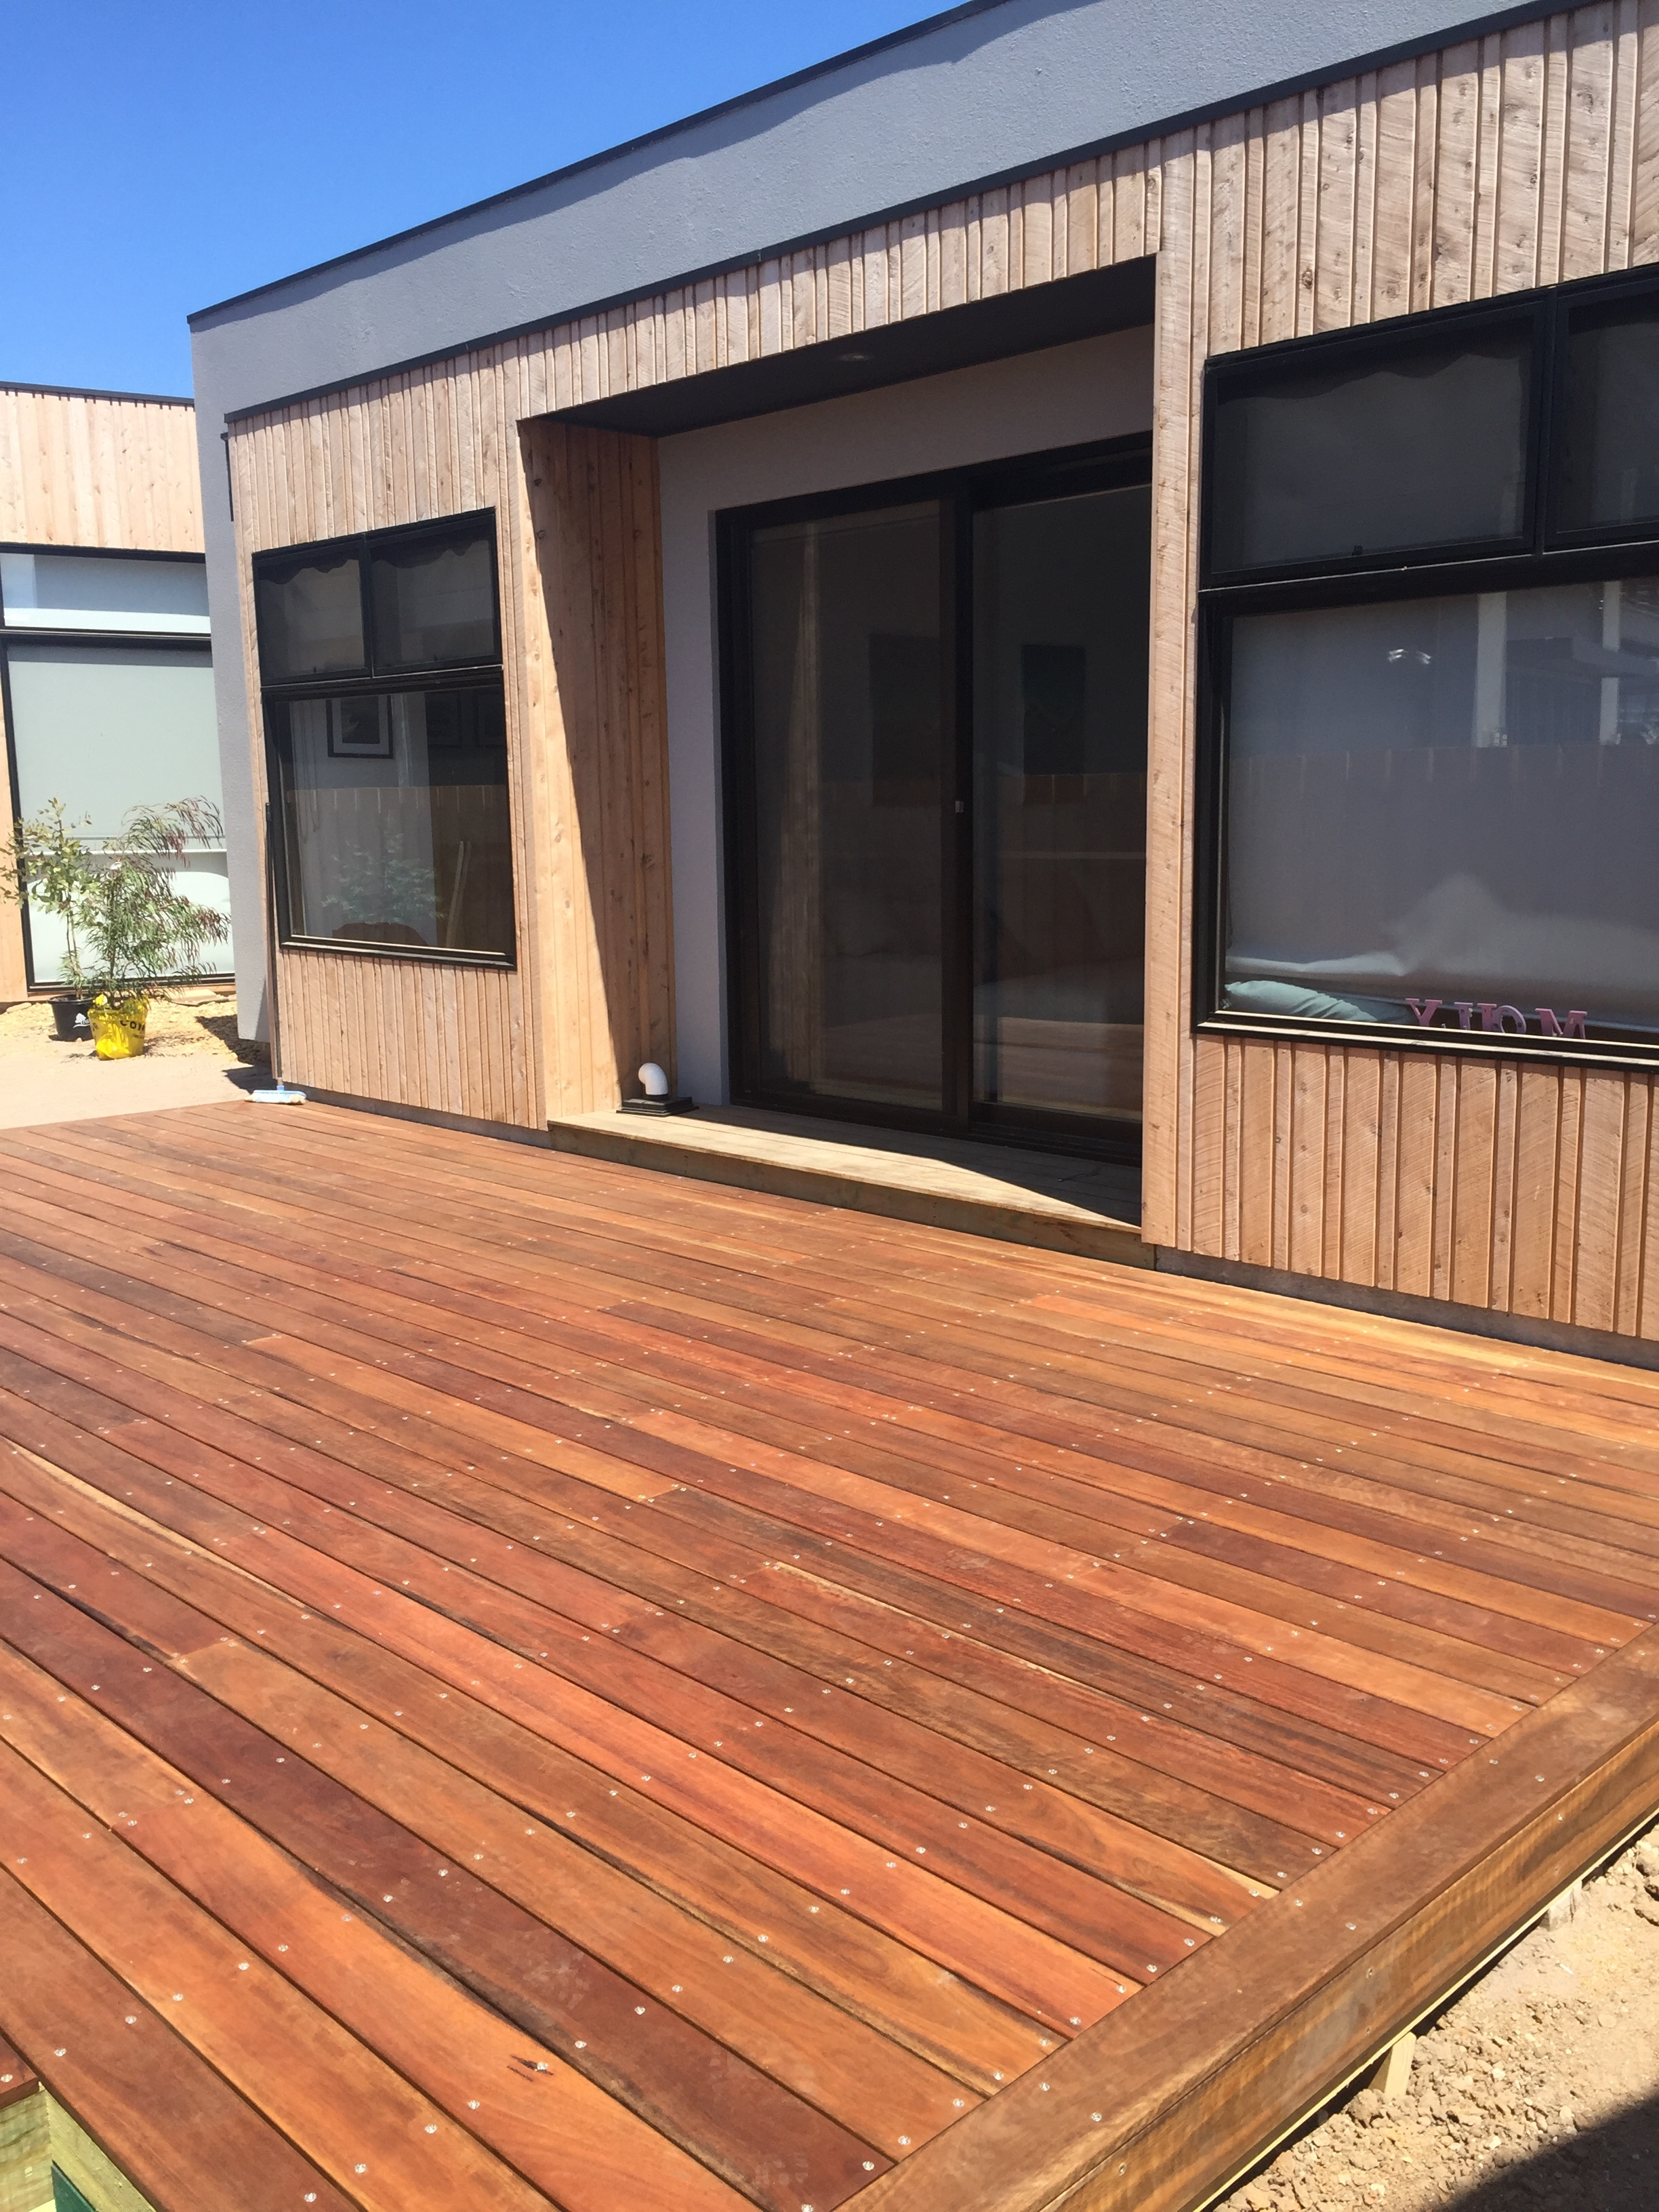 136x19mm Spotted gum decking